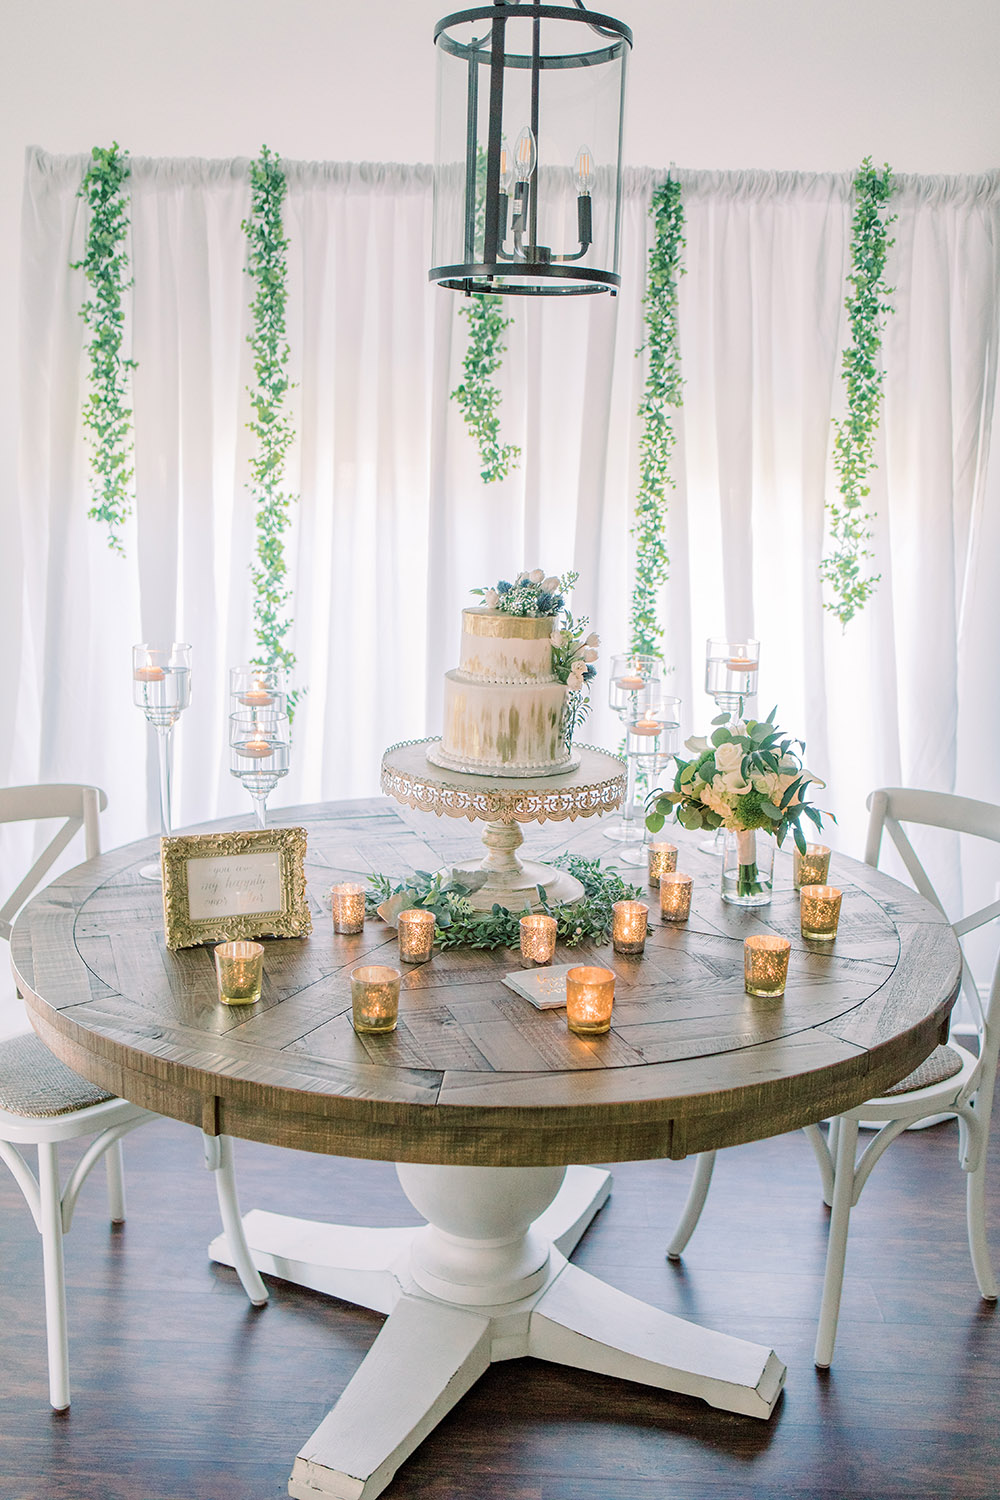 Breakfast nook cake table display. Photo: Ashley Kristen Photography